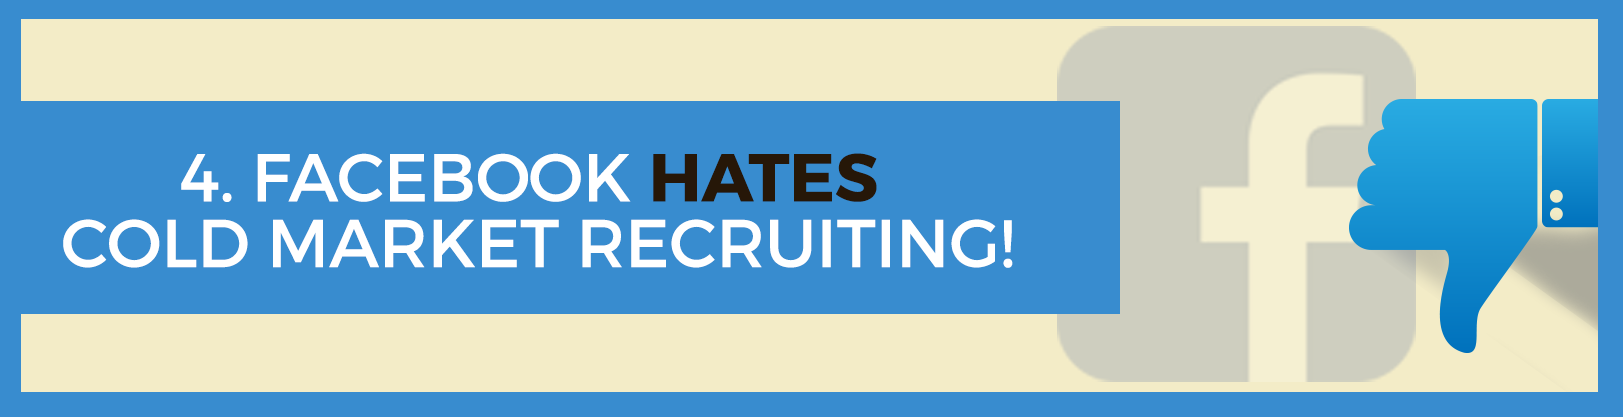 Facebook hates cold market recruiting! - network marketing